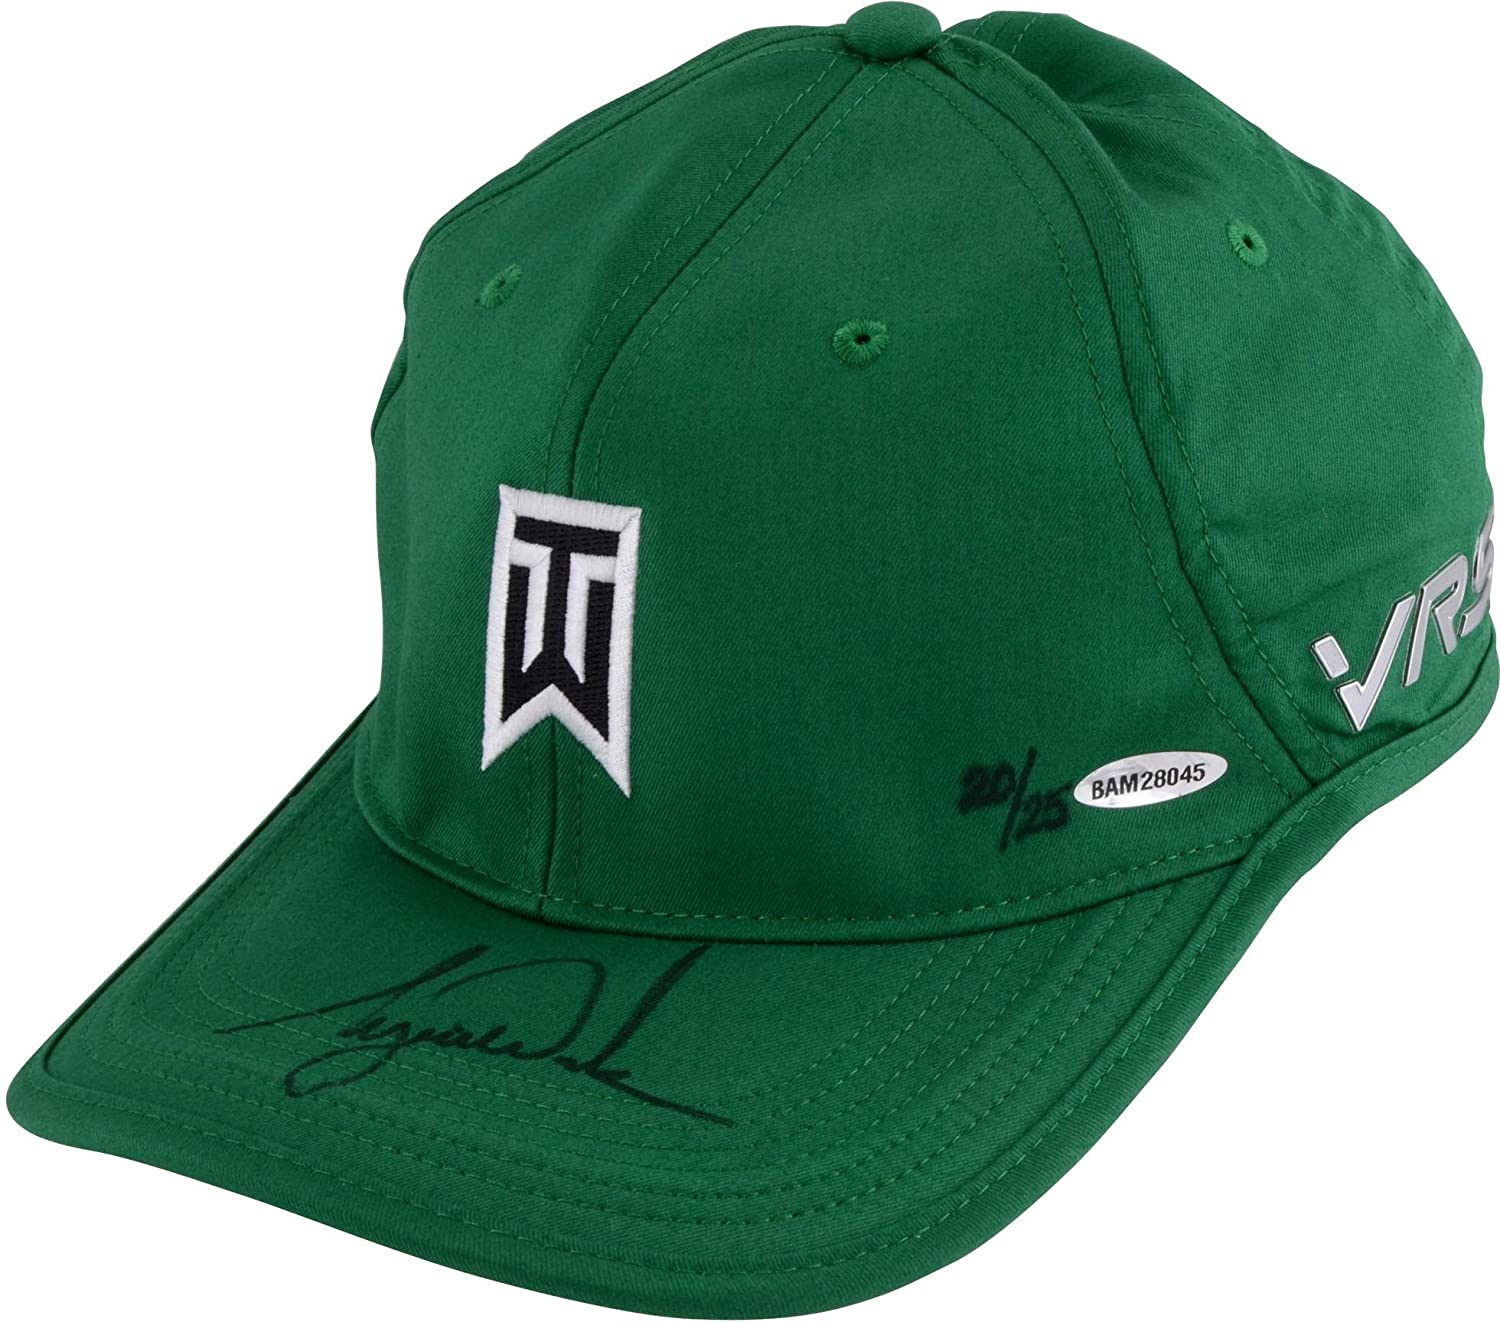 b795e0938bc11 Tiger Woods Autographed Green Nike Victory Hat - Upper Deck - Fanatics  Authentic Certified - Autographed Golf Hats and Visors at Amazon s Sports  ...